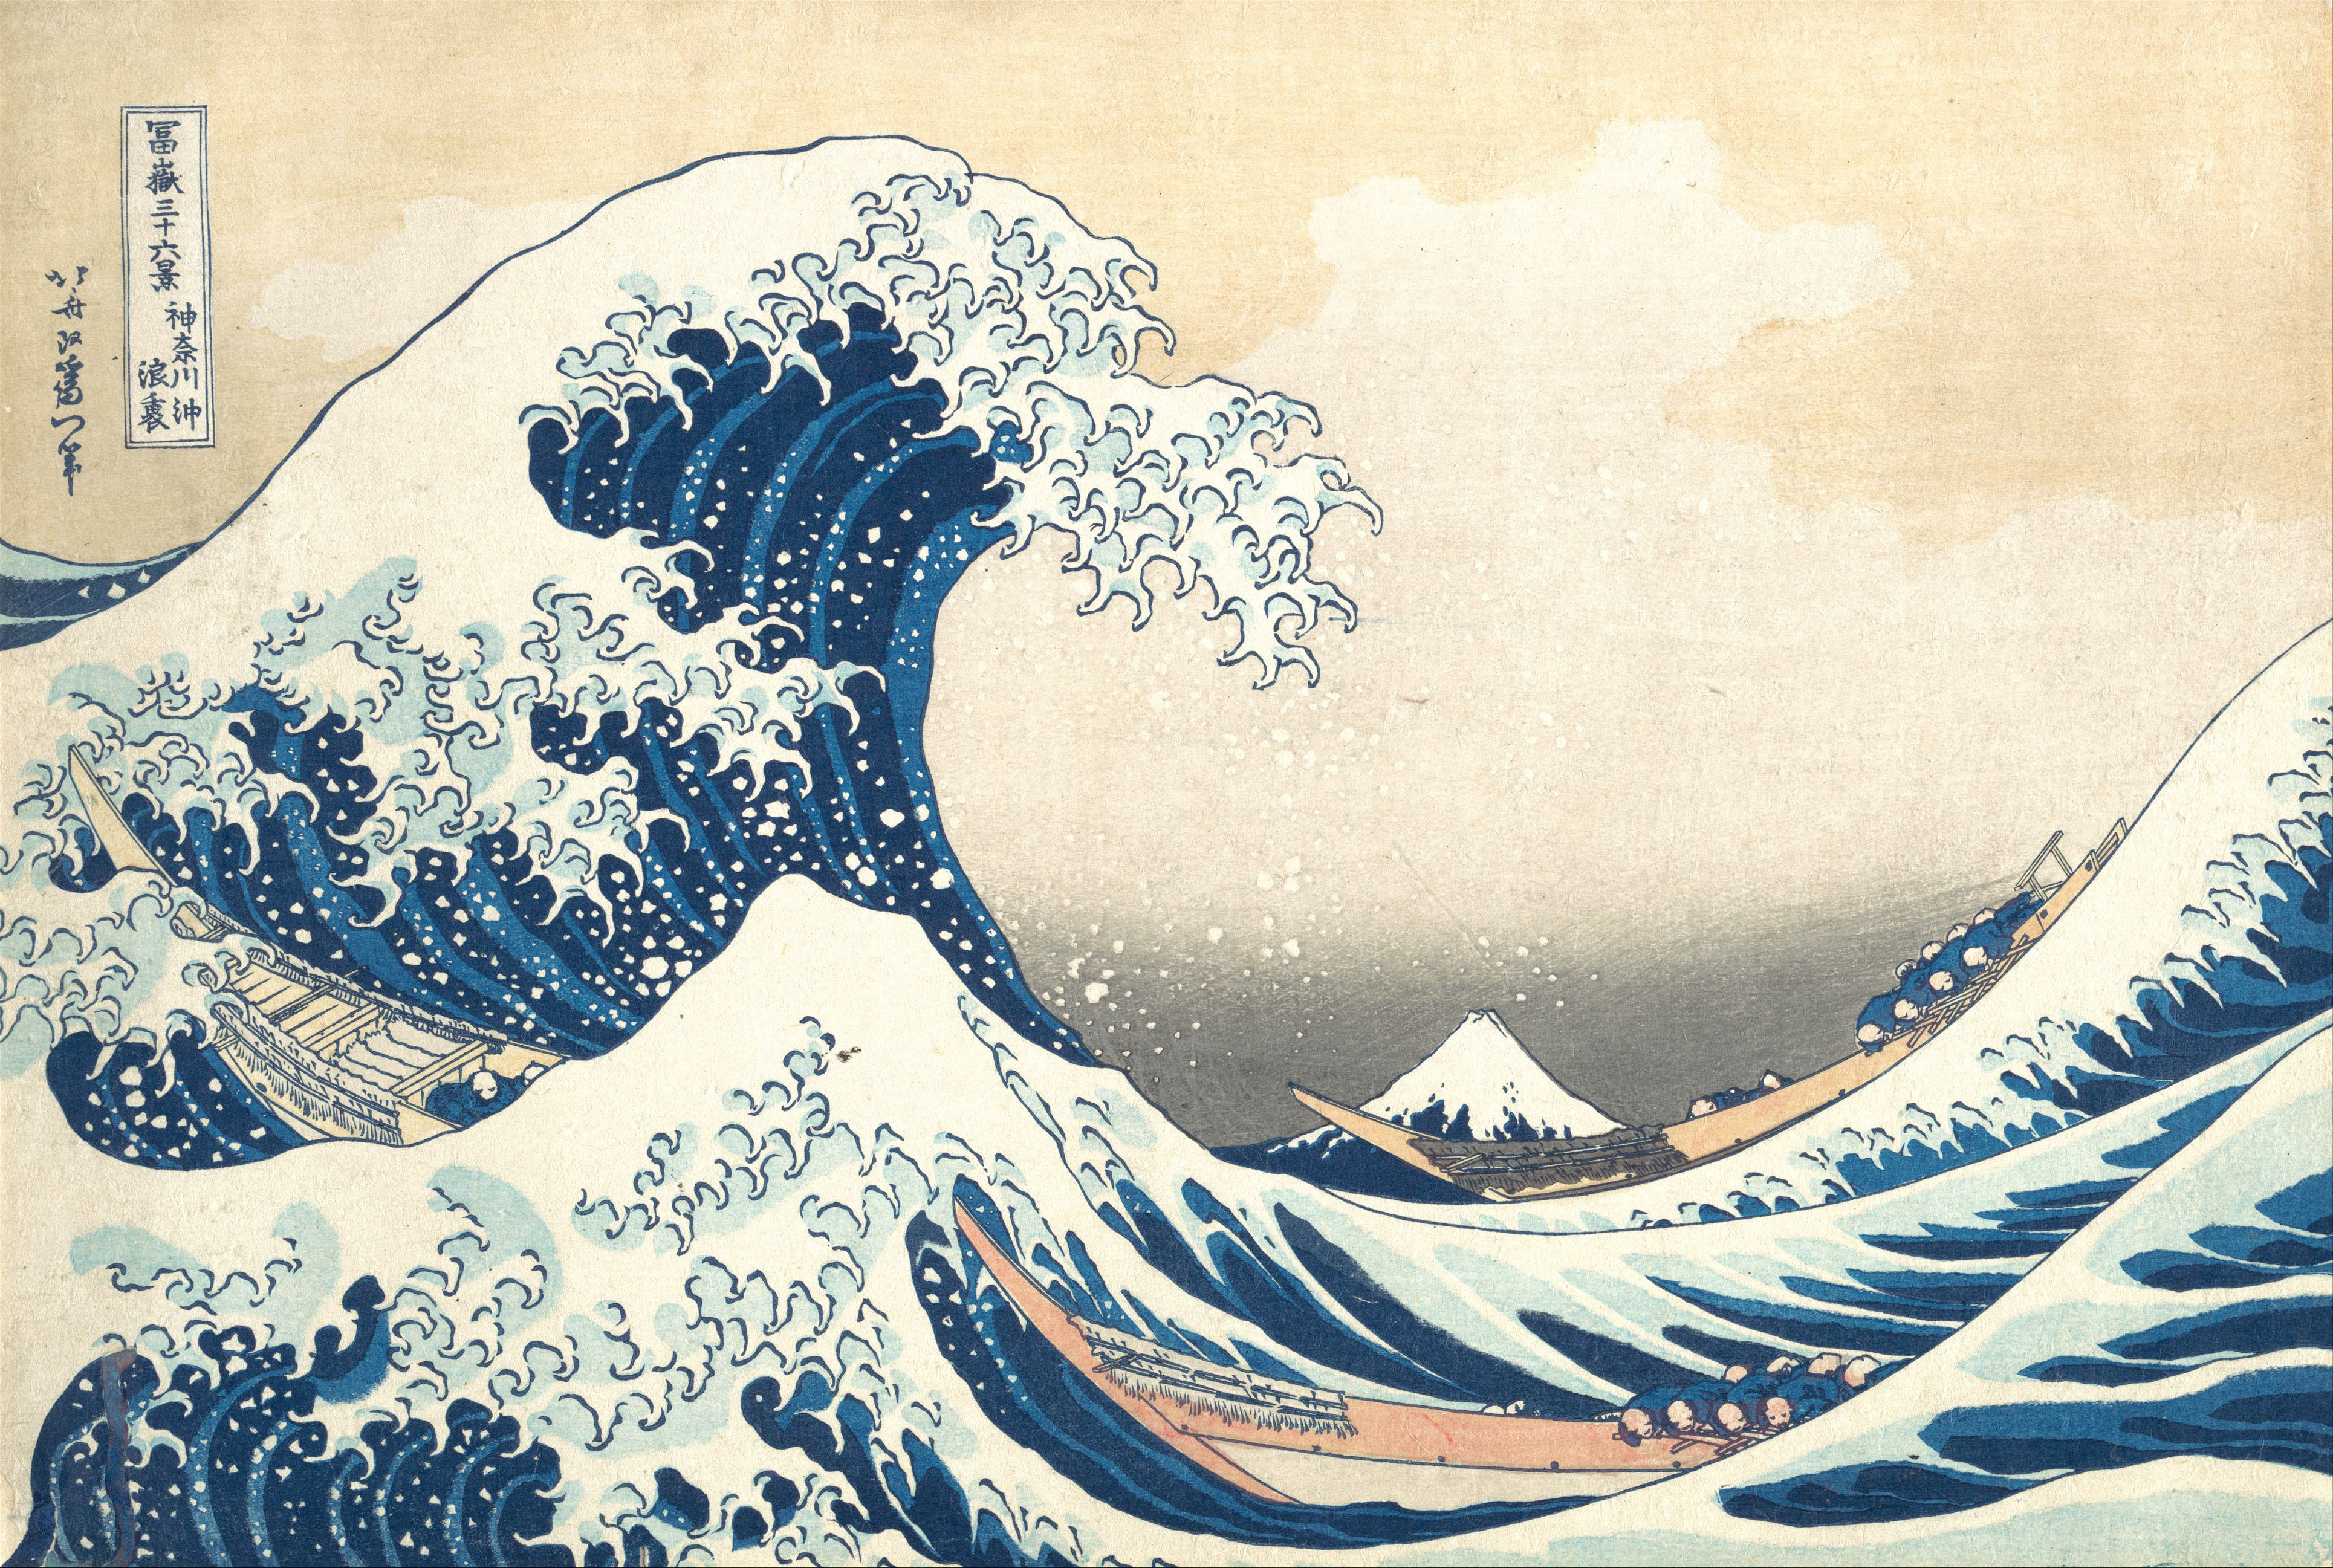 """Under the Great Wave,"" Hokusai, Image courtesy of The Met: http://www.metmuseum.org/blogs/now-at-the-met/2014/great-wave"